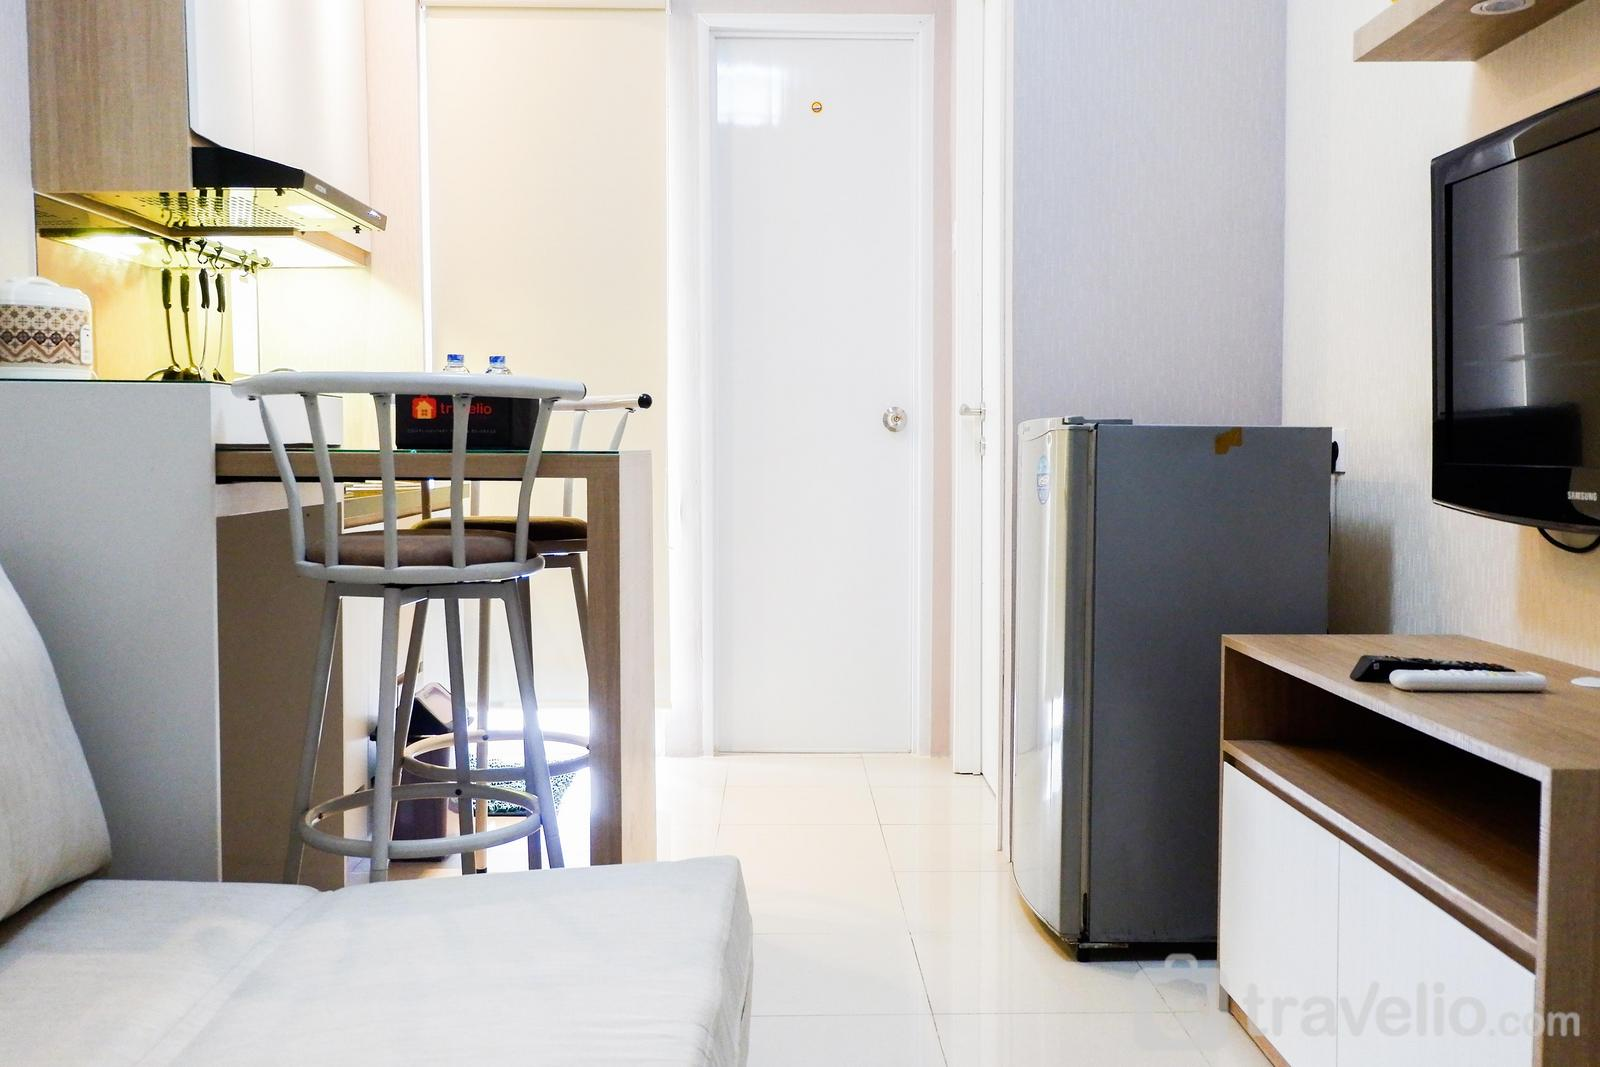 Bassura City Cipinang - Modern and Comfy Design 2BR Bassura City Apartment By Travelio